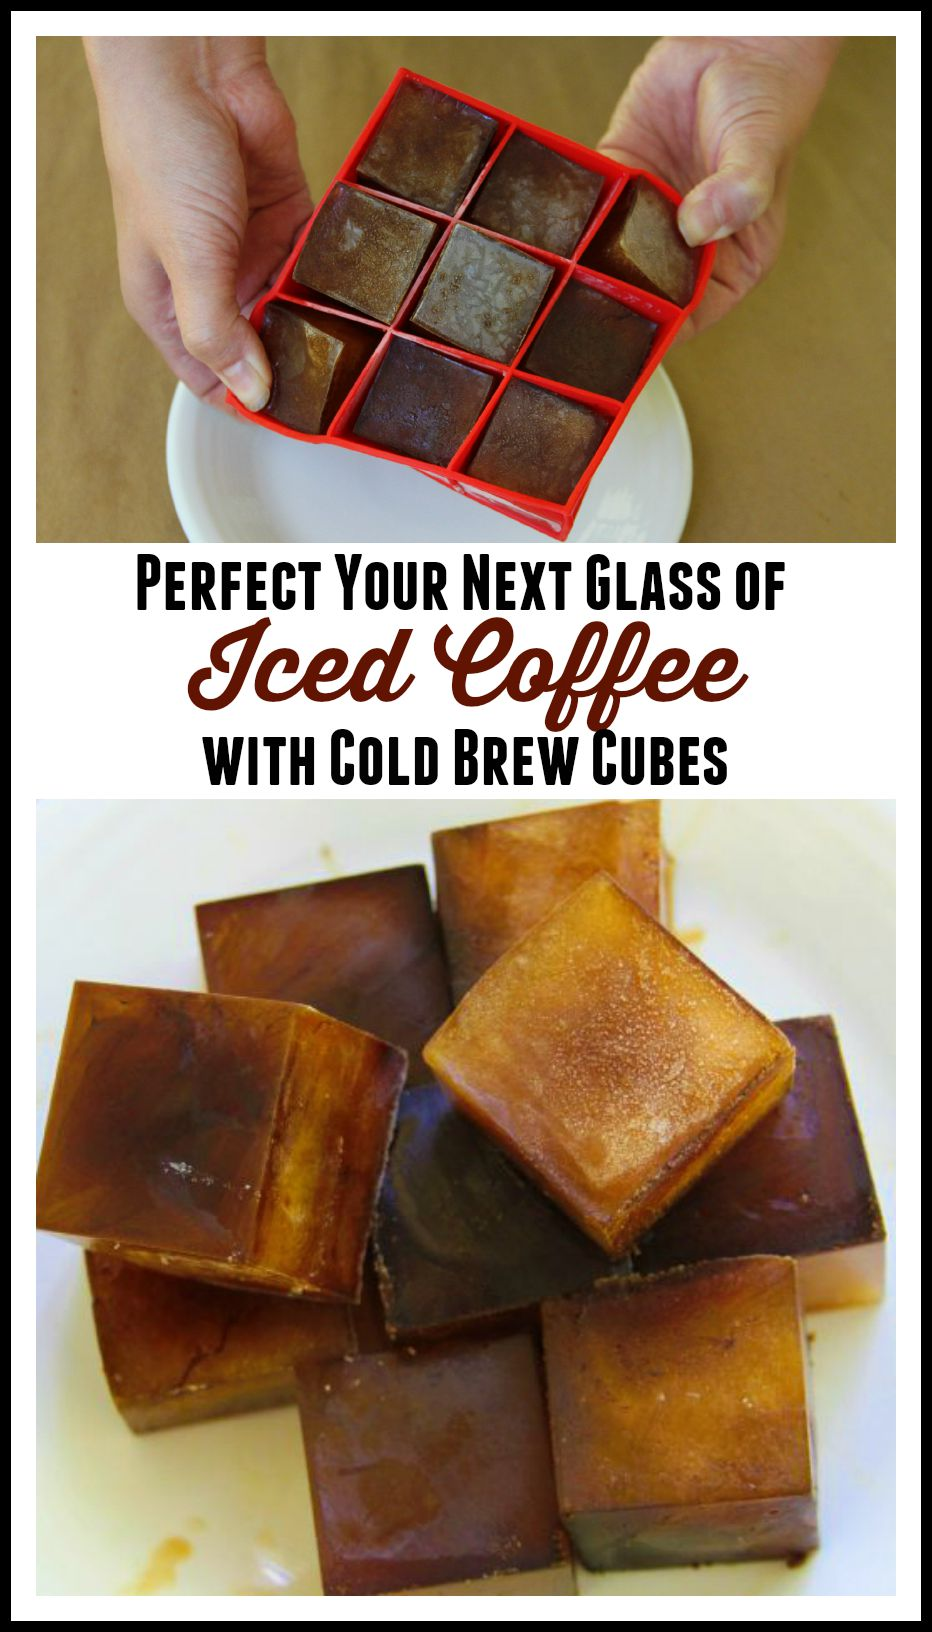 Iced Coffee Perfection